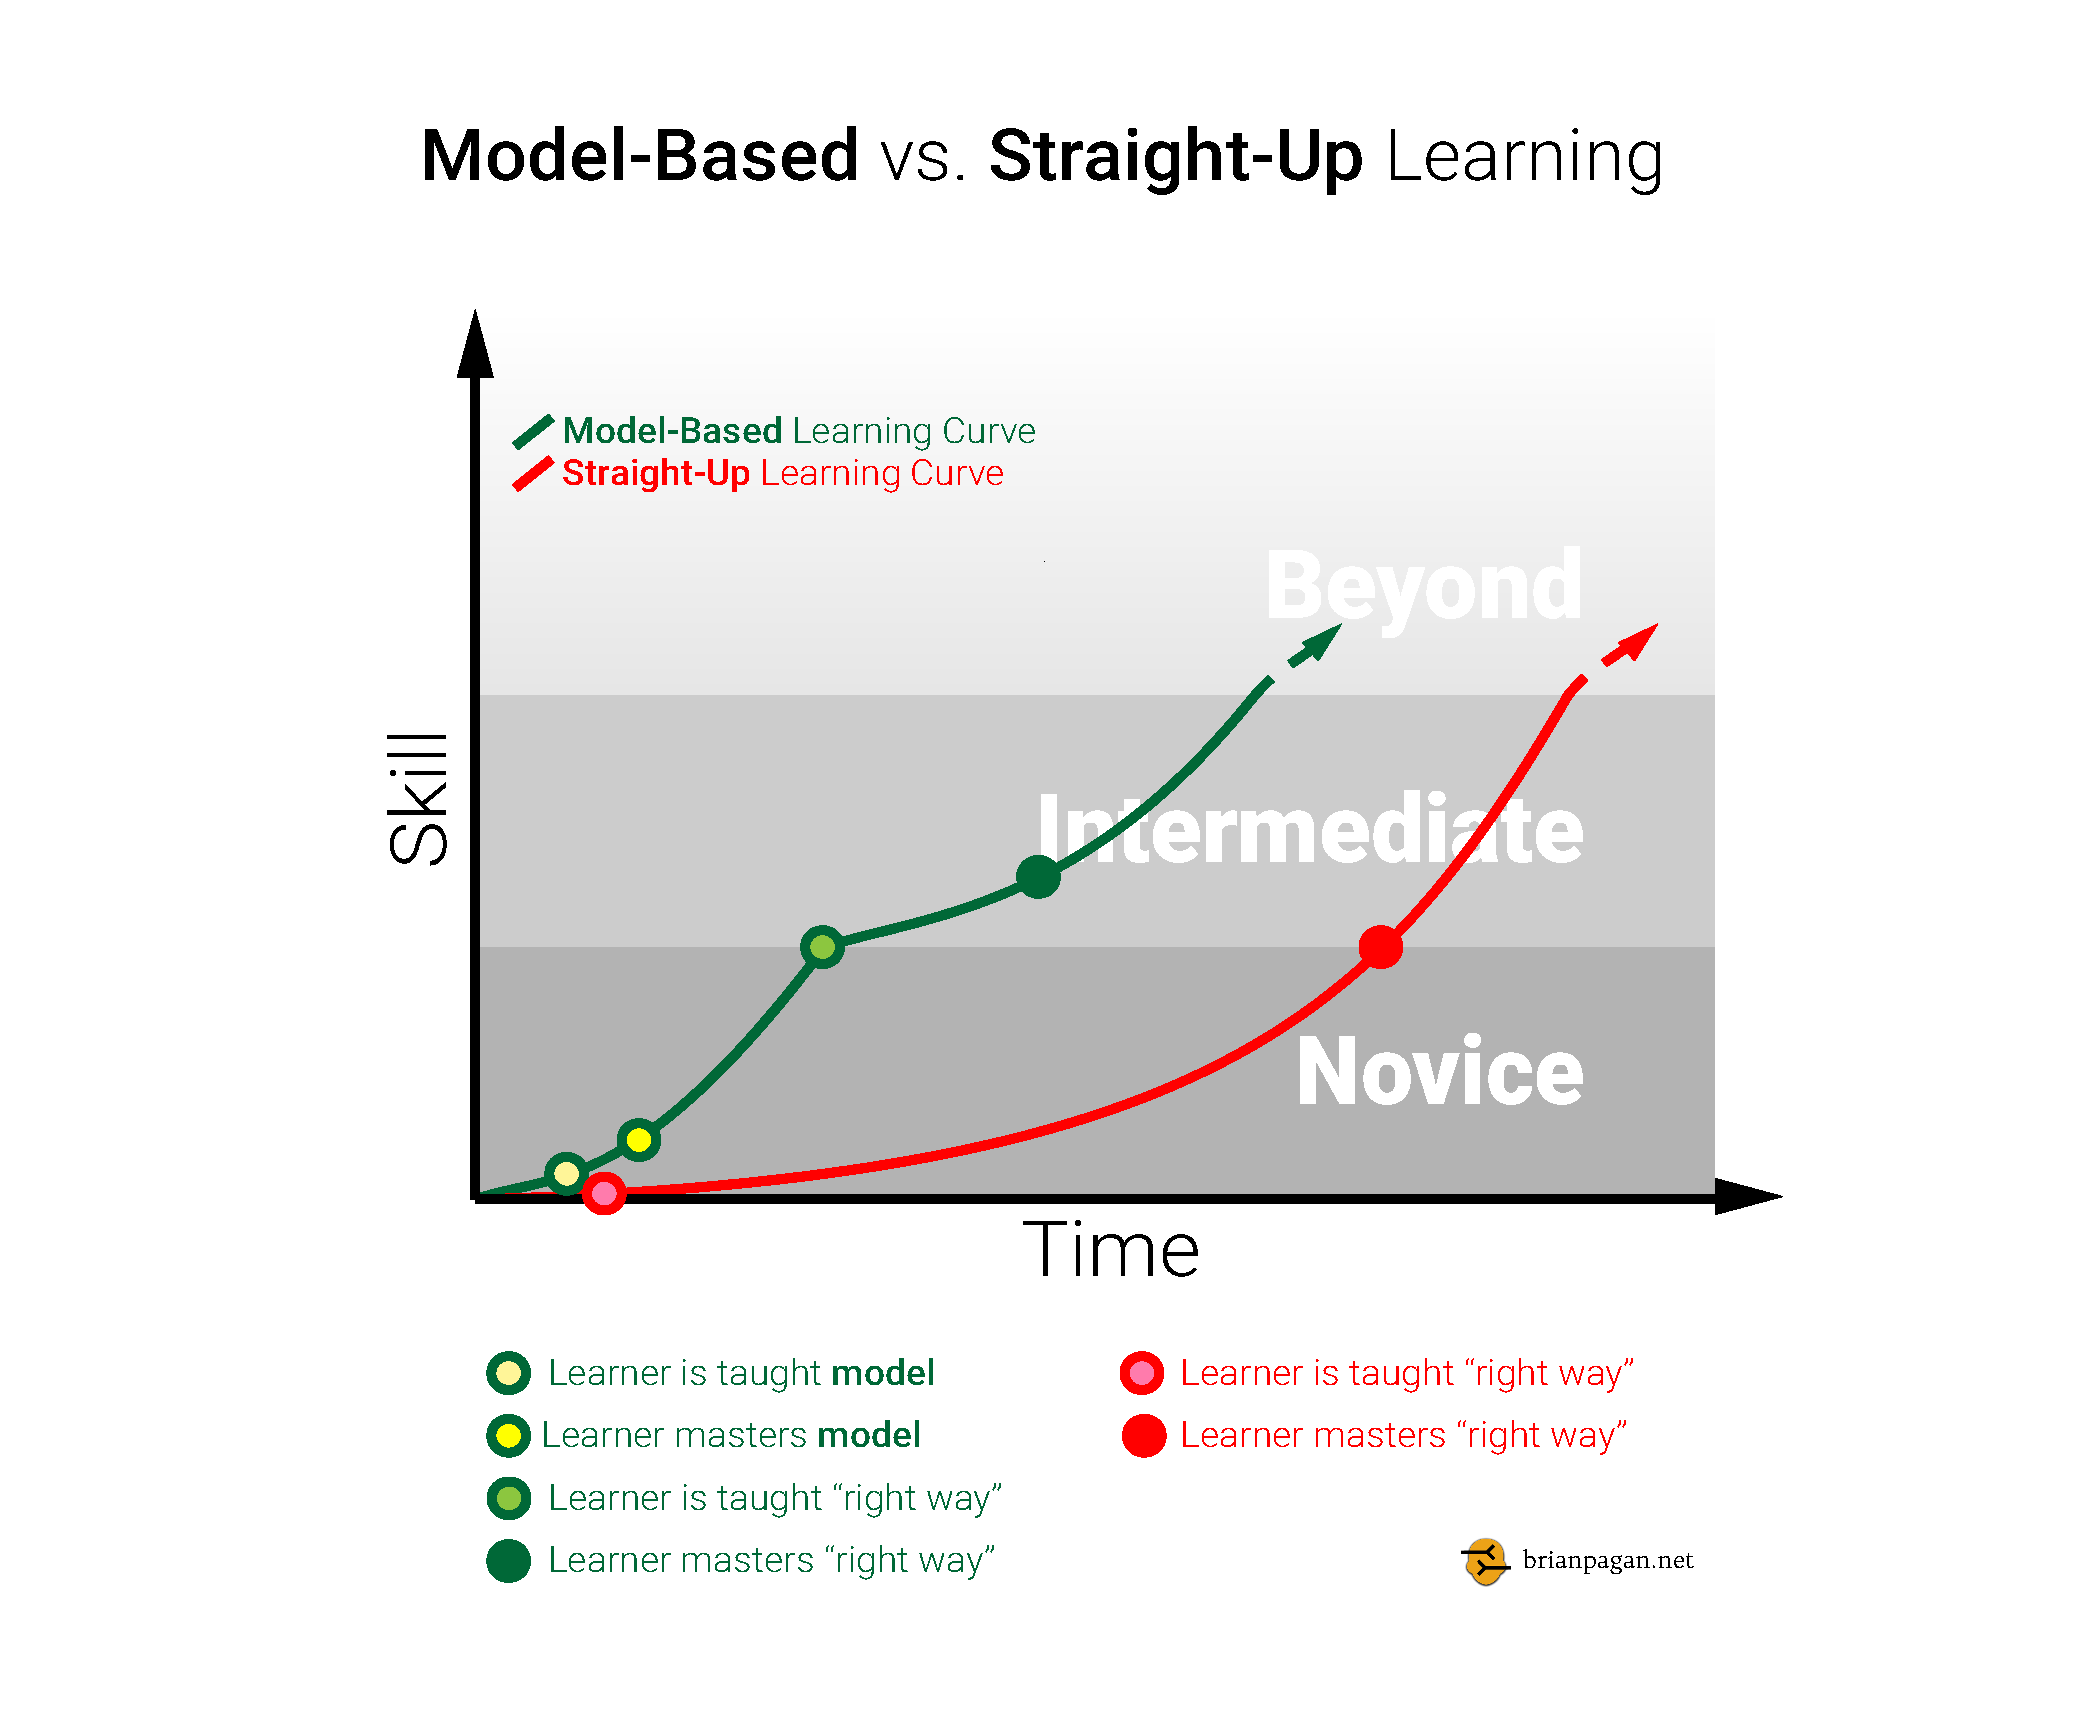 Usability In Salsa Dancing Models Learning And Communication Cool Dance Moves Step By Diagram Curve For Model Based Vs Straight Up